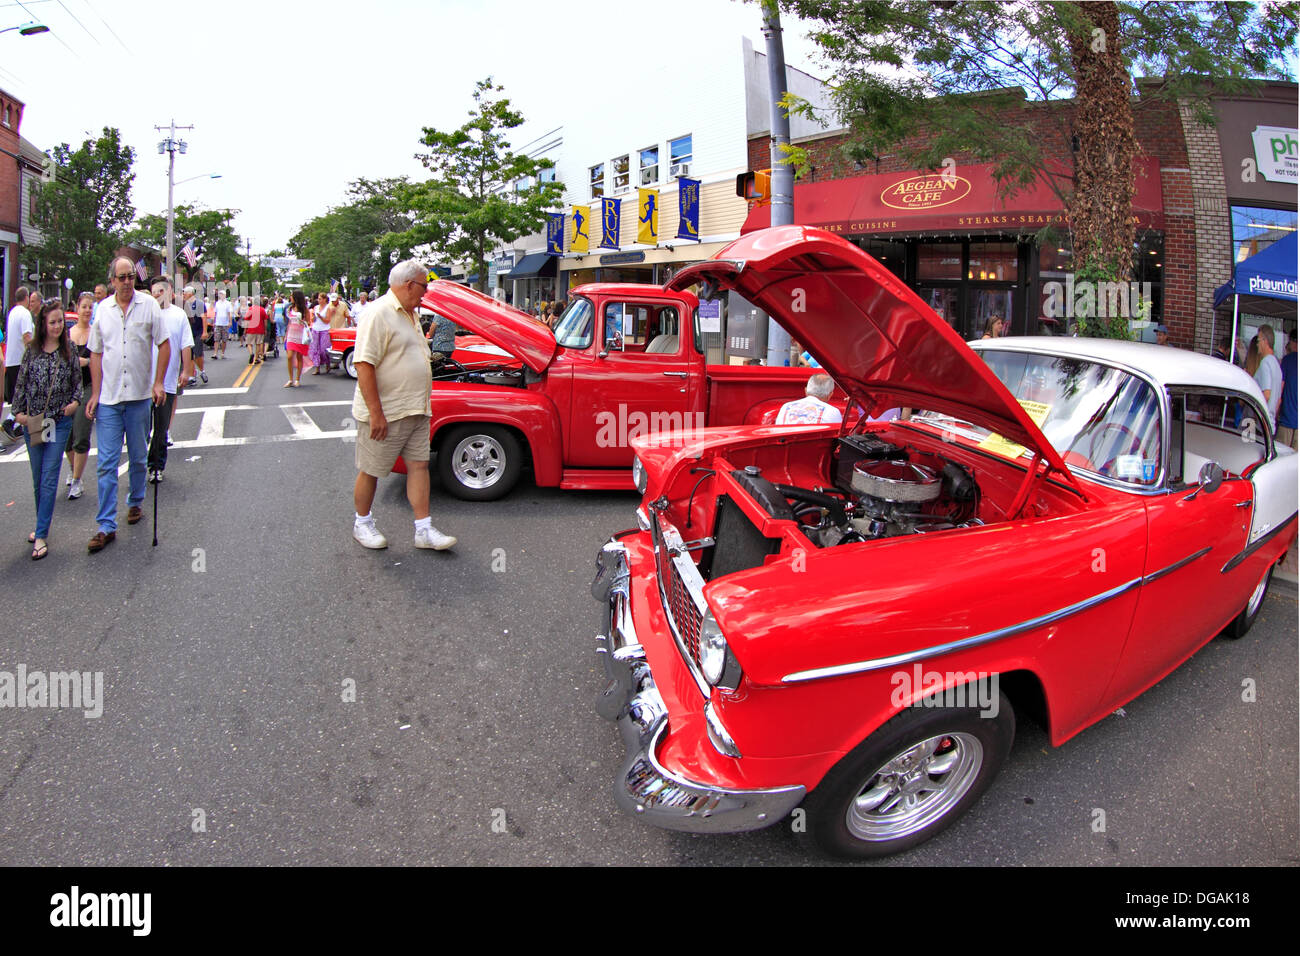 Classic Cars On Display At Street Festival Sayville Long Island